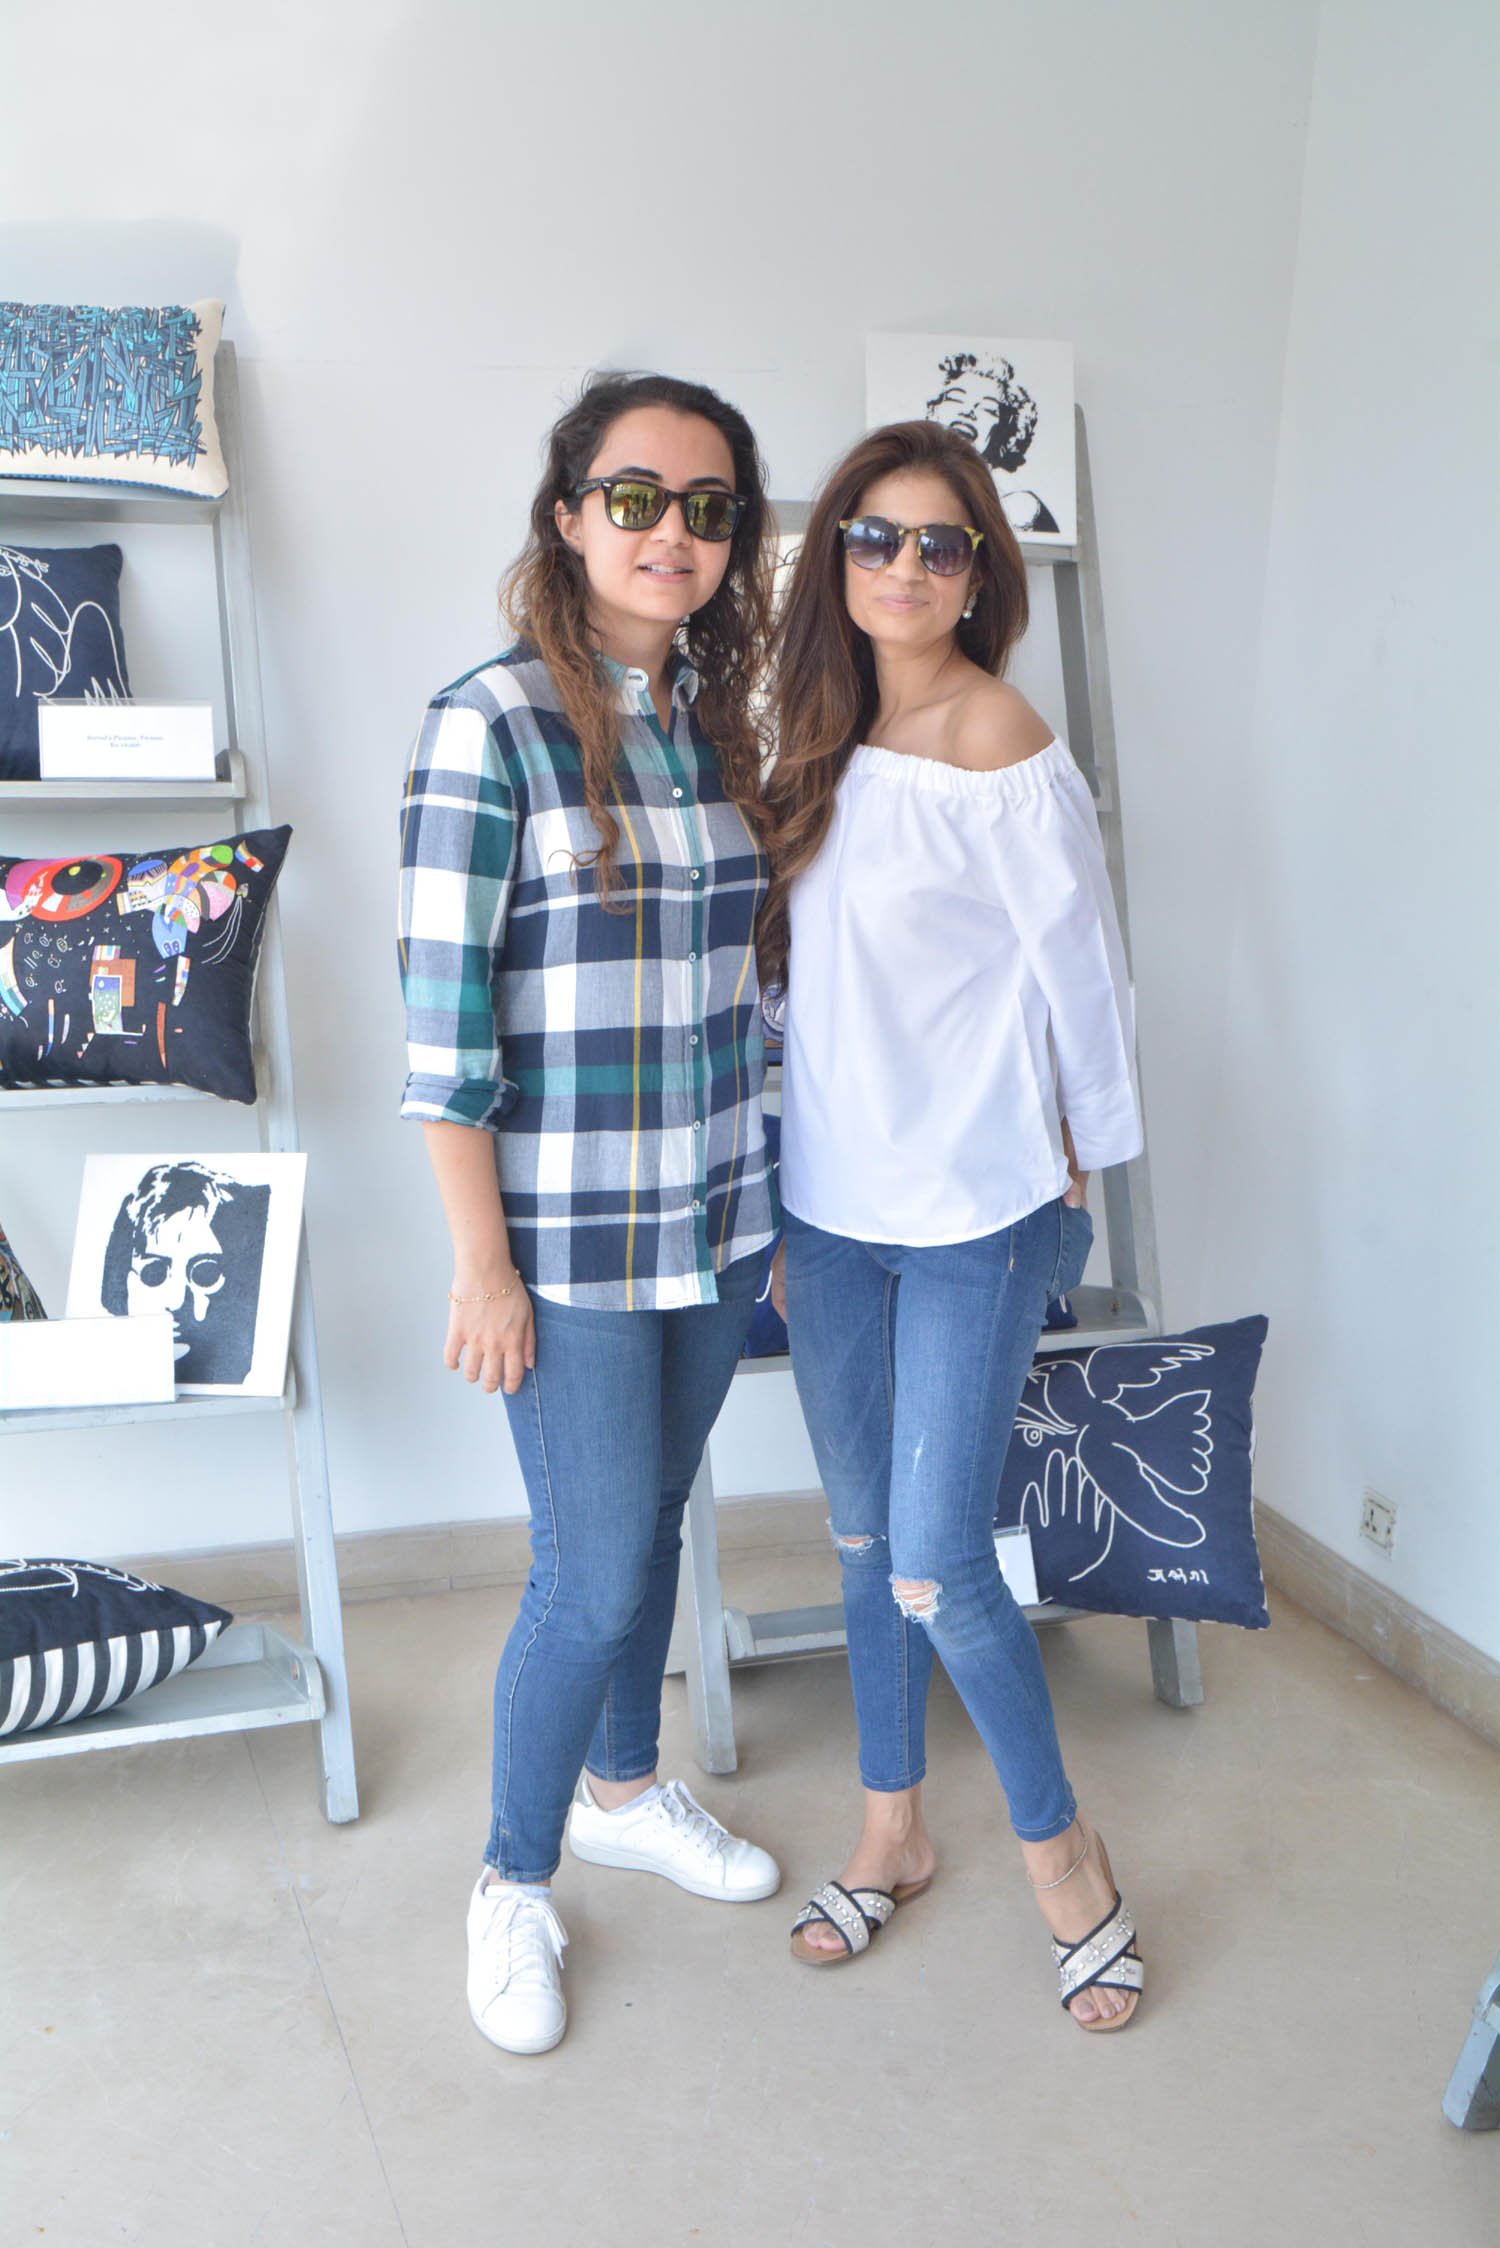 Fatima Afzl and Sada Parekh